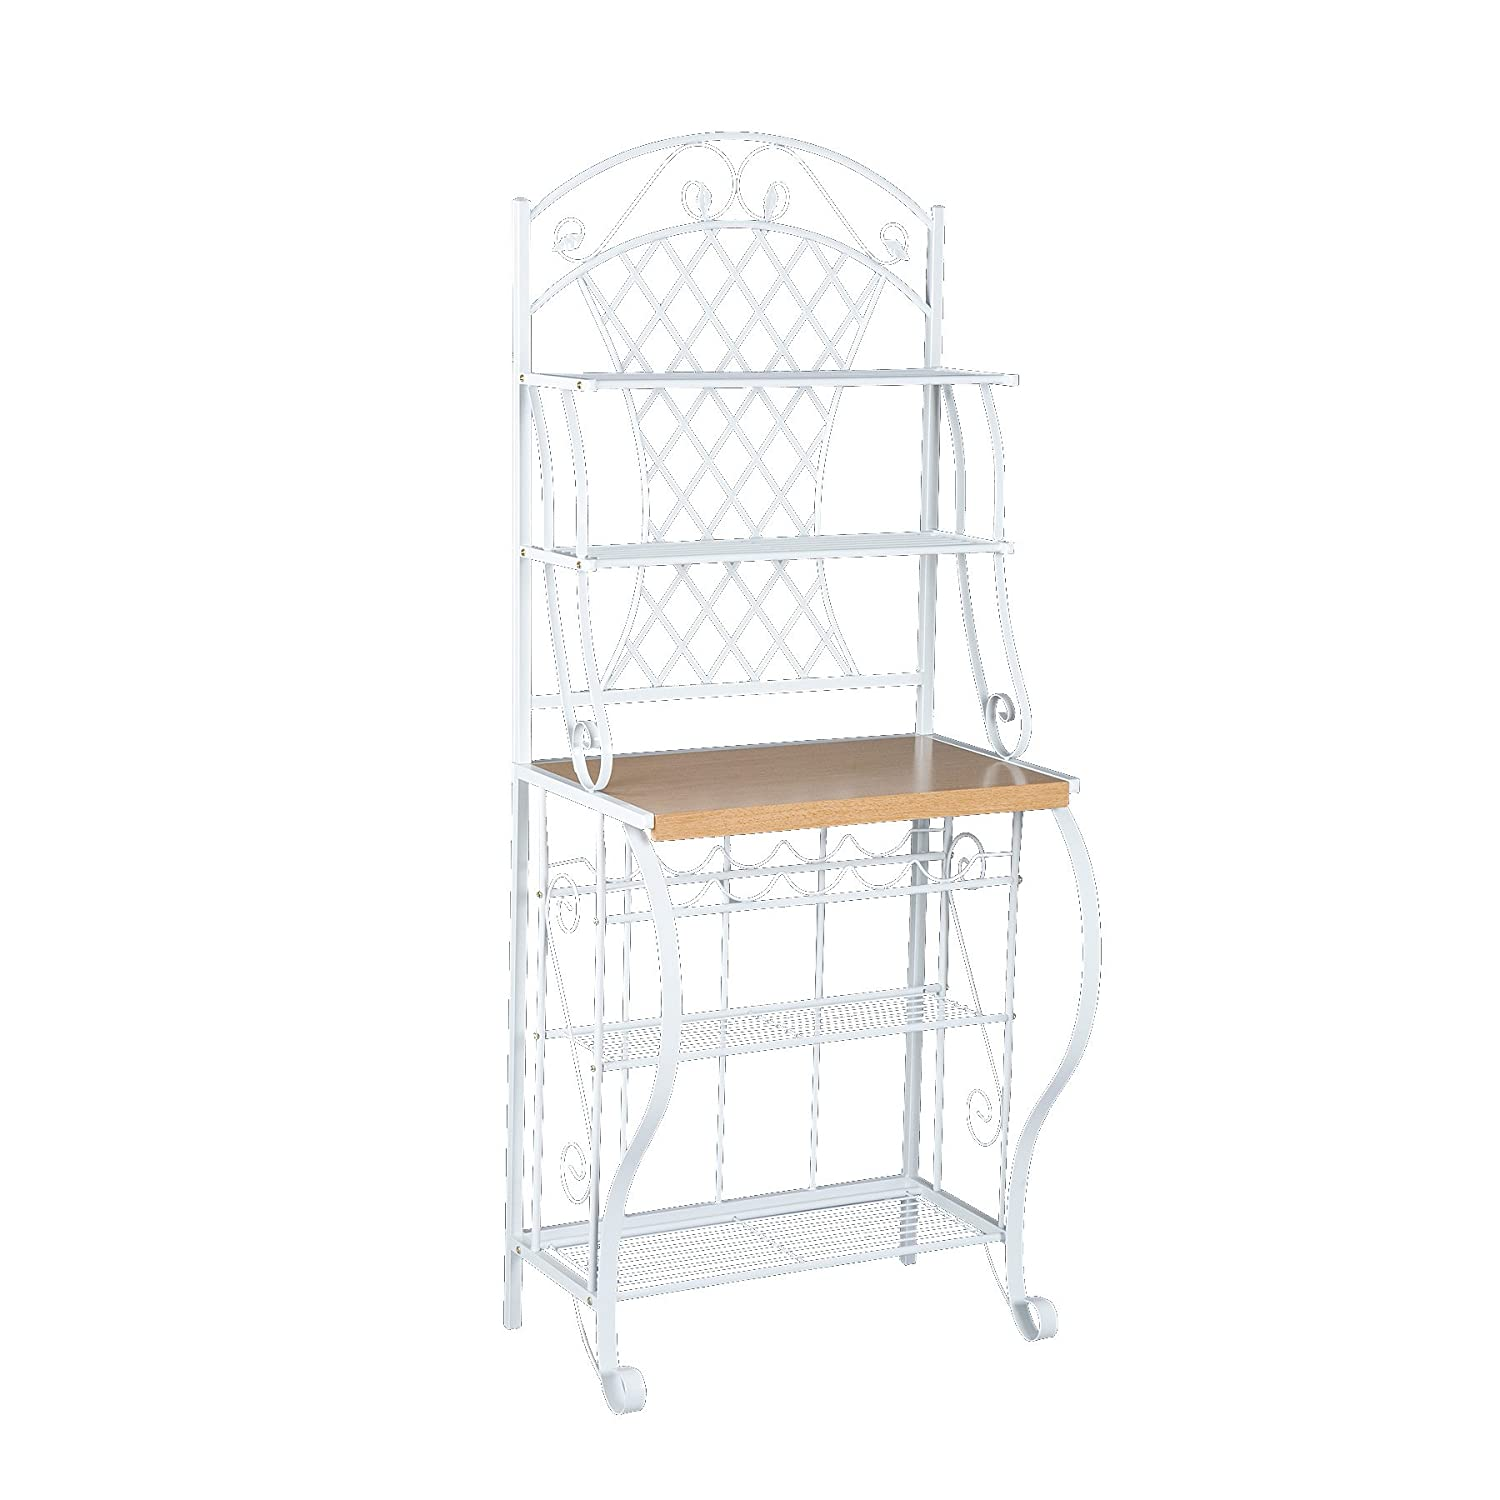 Southern Enterprises Durable Metal Framed Bakers Rack and Kitchen Storage Unit with Decorative Arch, 70 x 42 x 172 cm, White Inc. BE1233 59-027-006-4-40